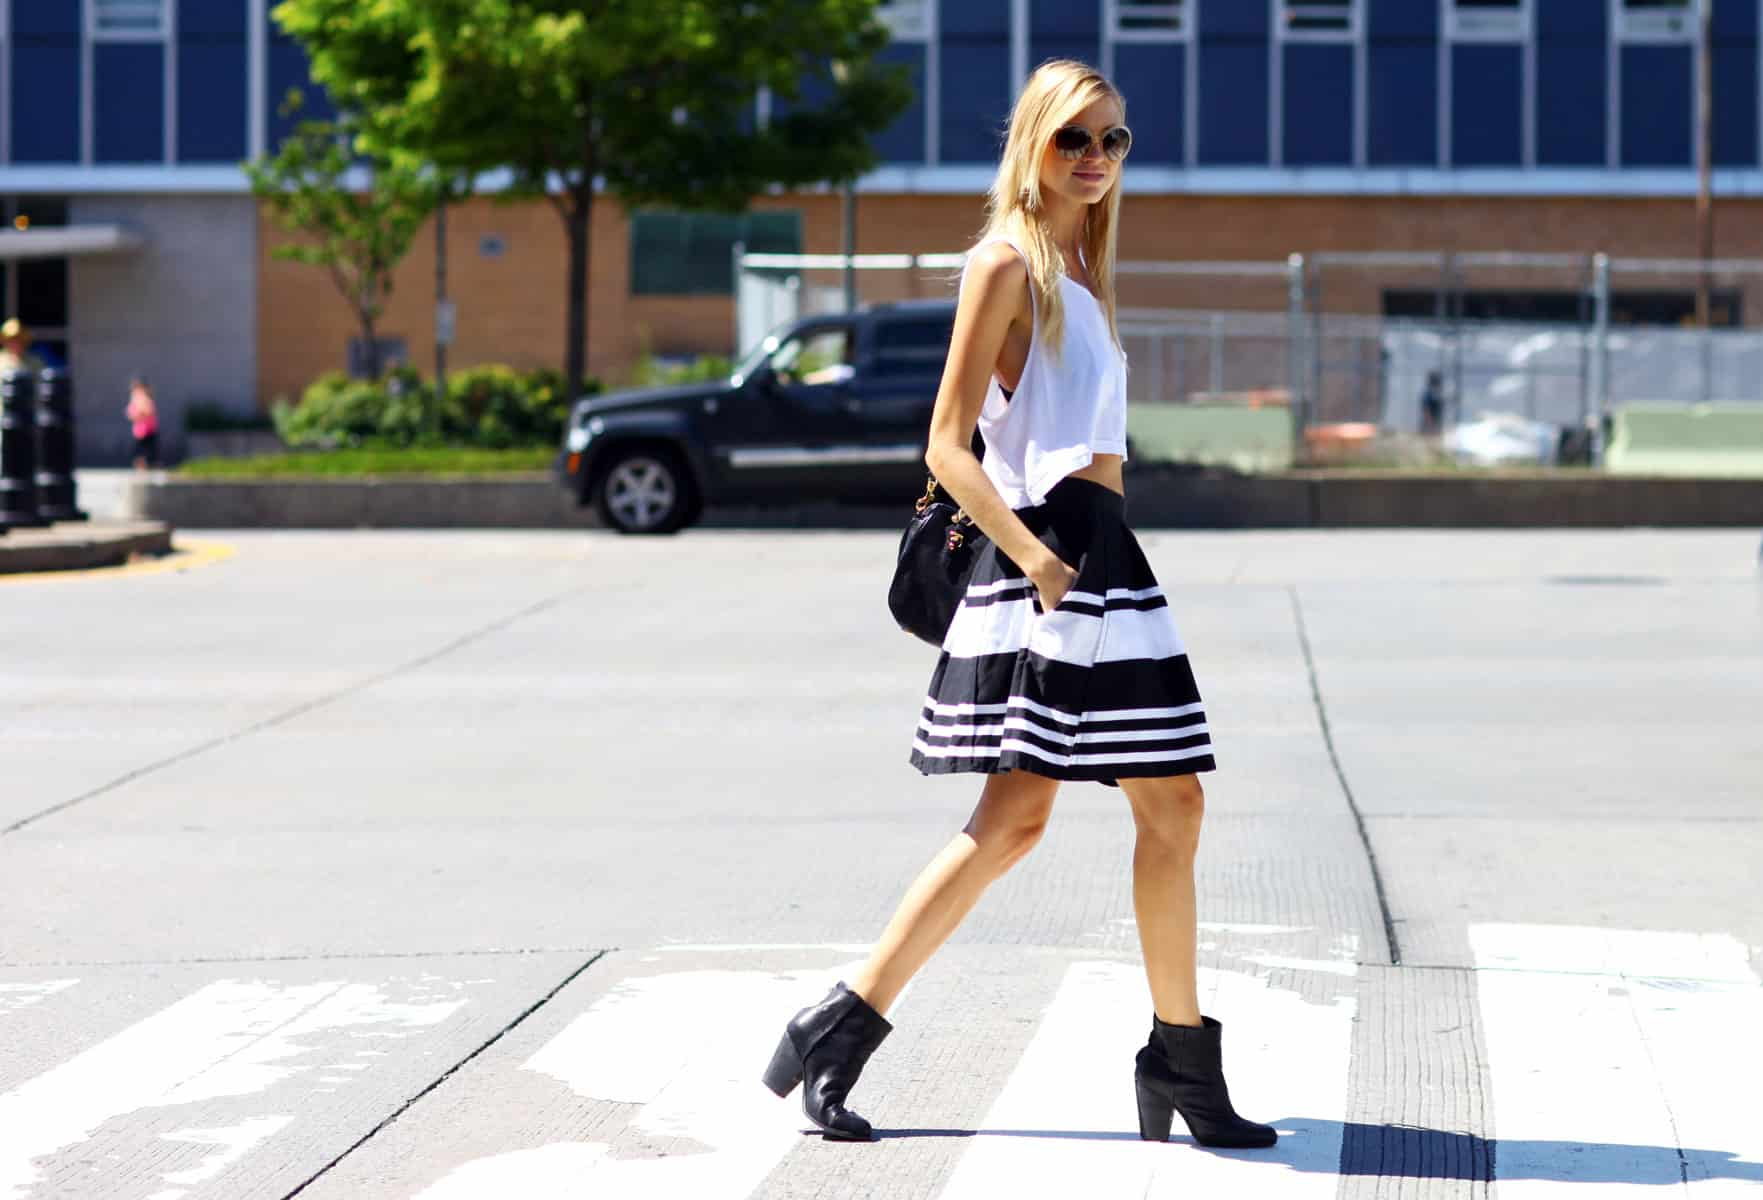 new-york-fashion-week-balck-white-outfit-stripped-skirt-spring-2013-street-style